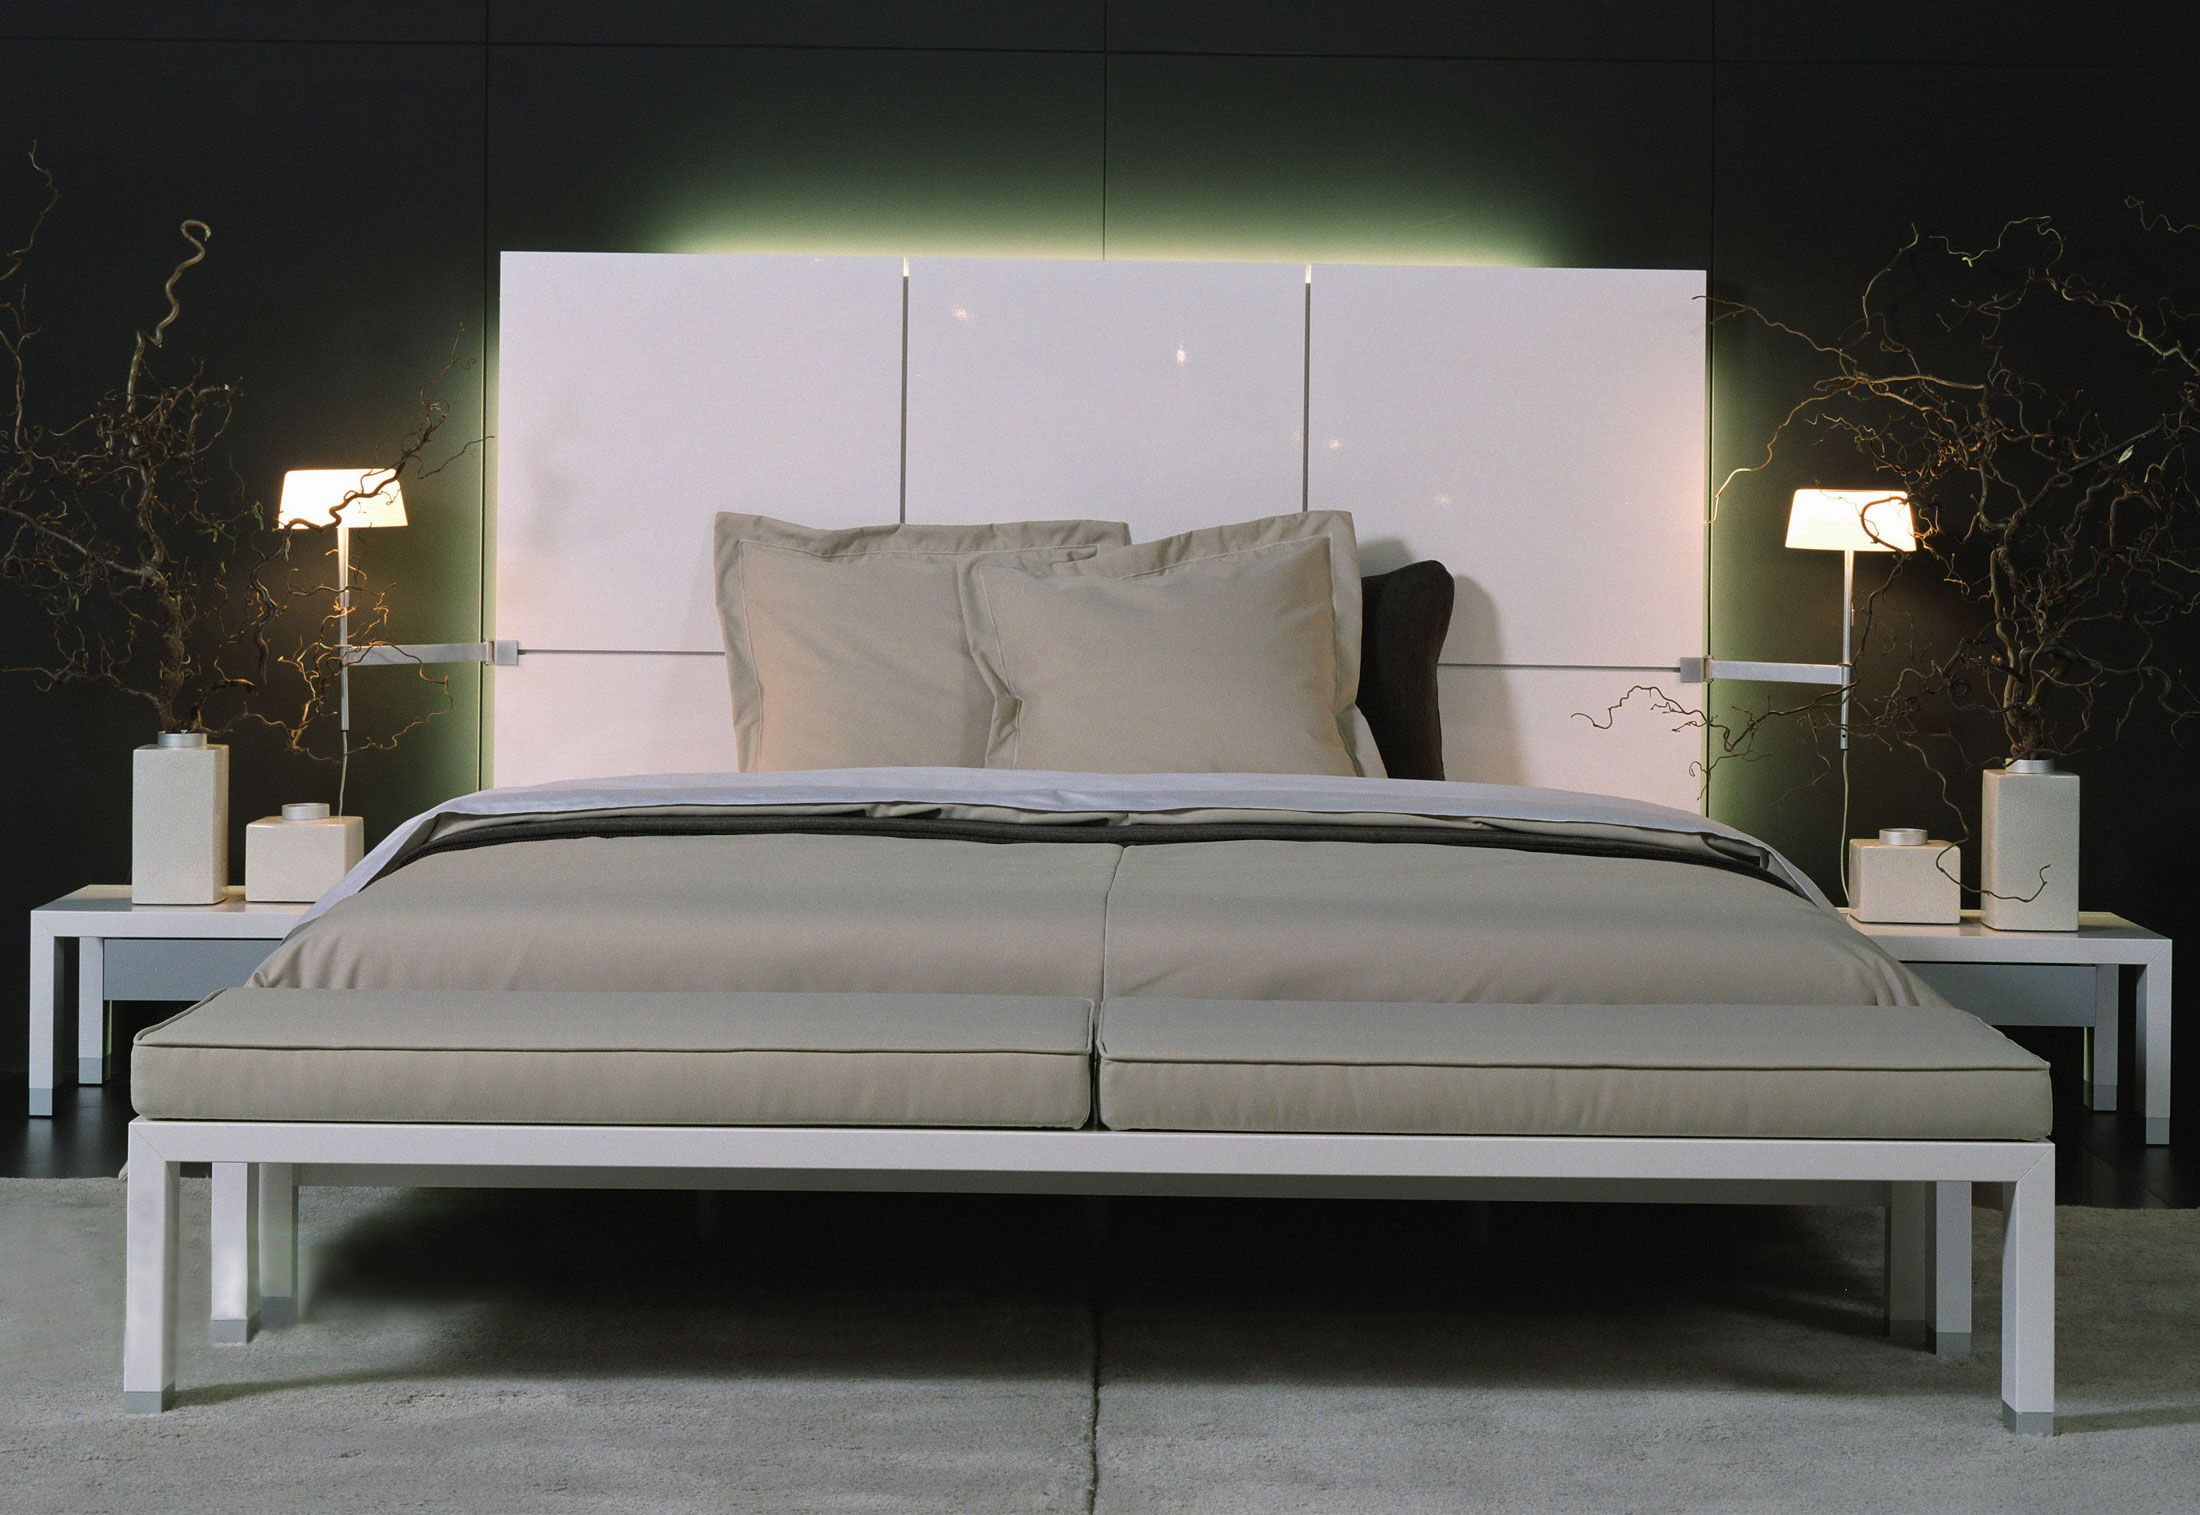 lumeo bed by ligne roset beds bedrooms pinterest beds and ligne roset. Black Bedroom Furniture Sets. Home Design Ideas